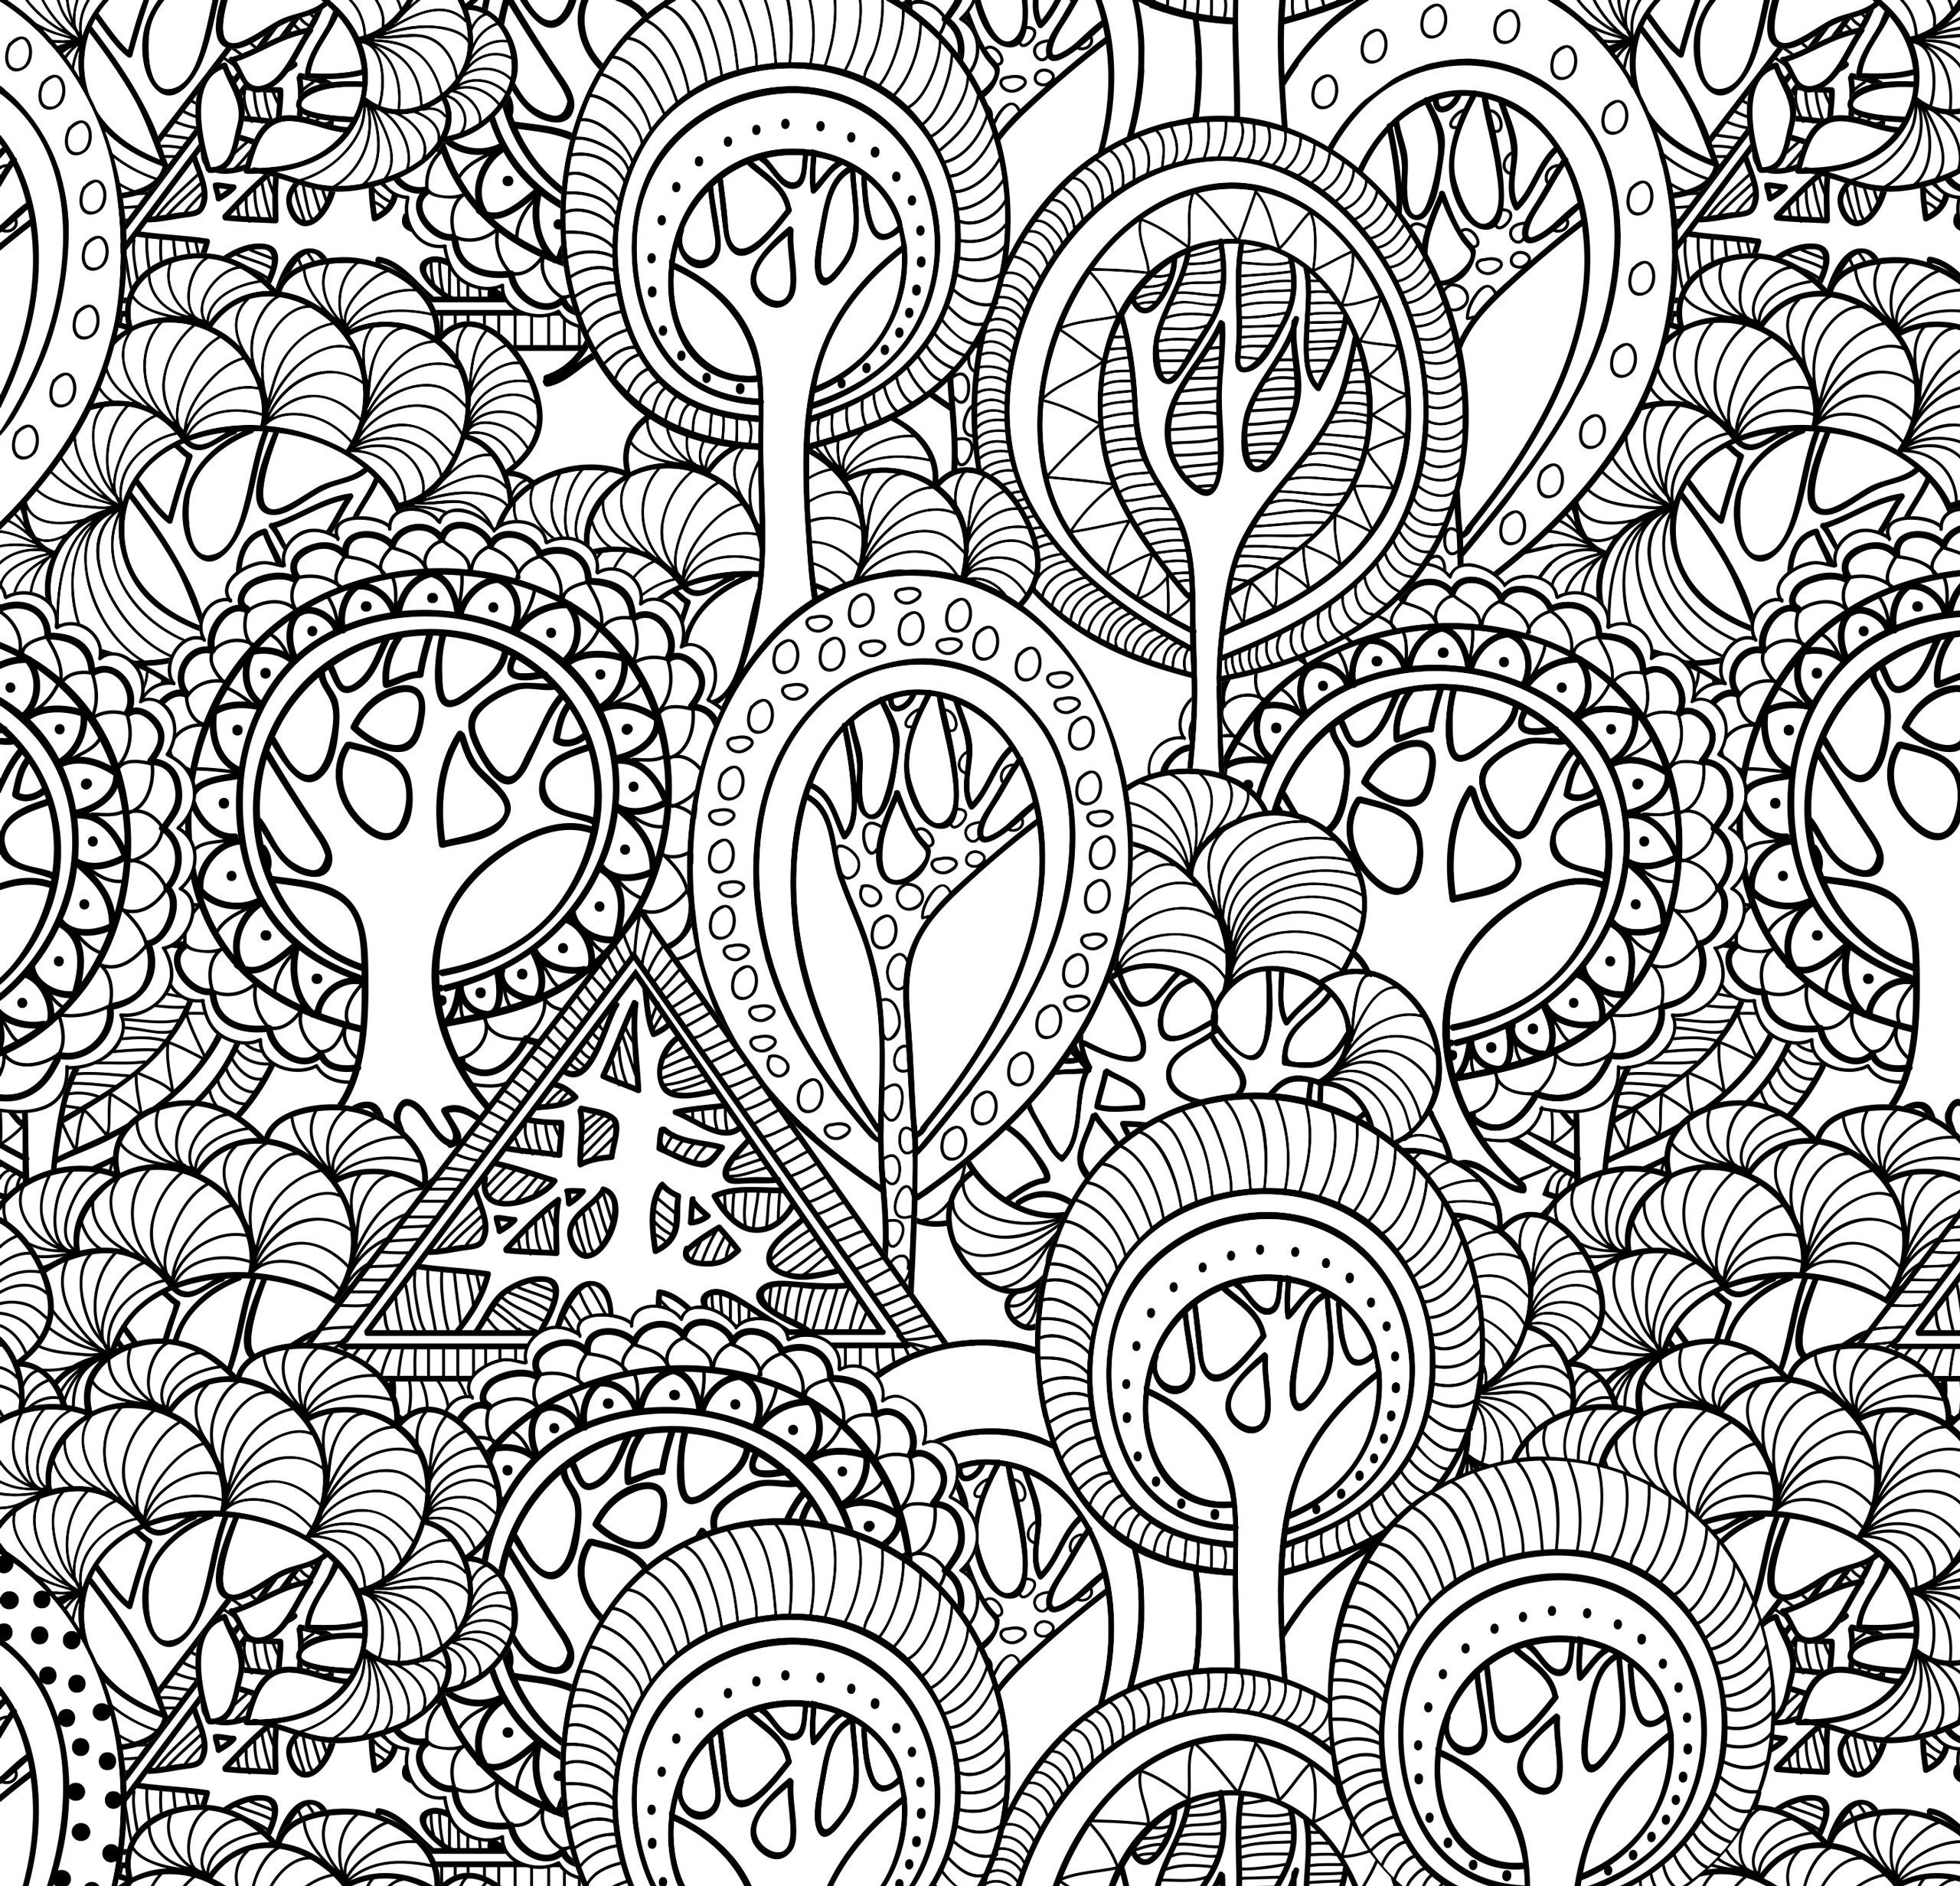 Elephant Adult Coloring Pages Coloring Pages For Adults Printable Elephant New Downloadable Adult